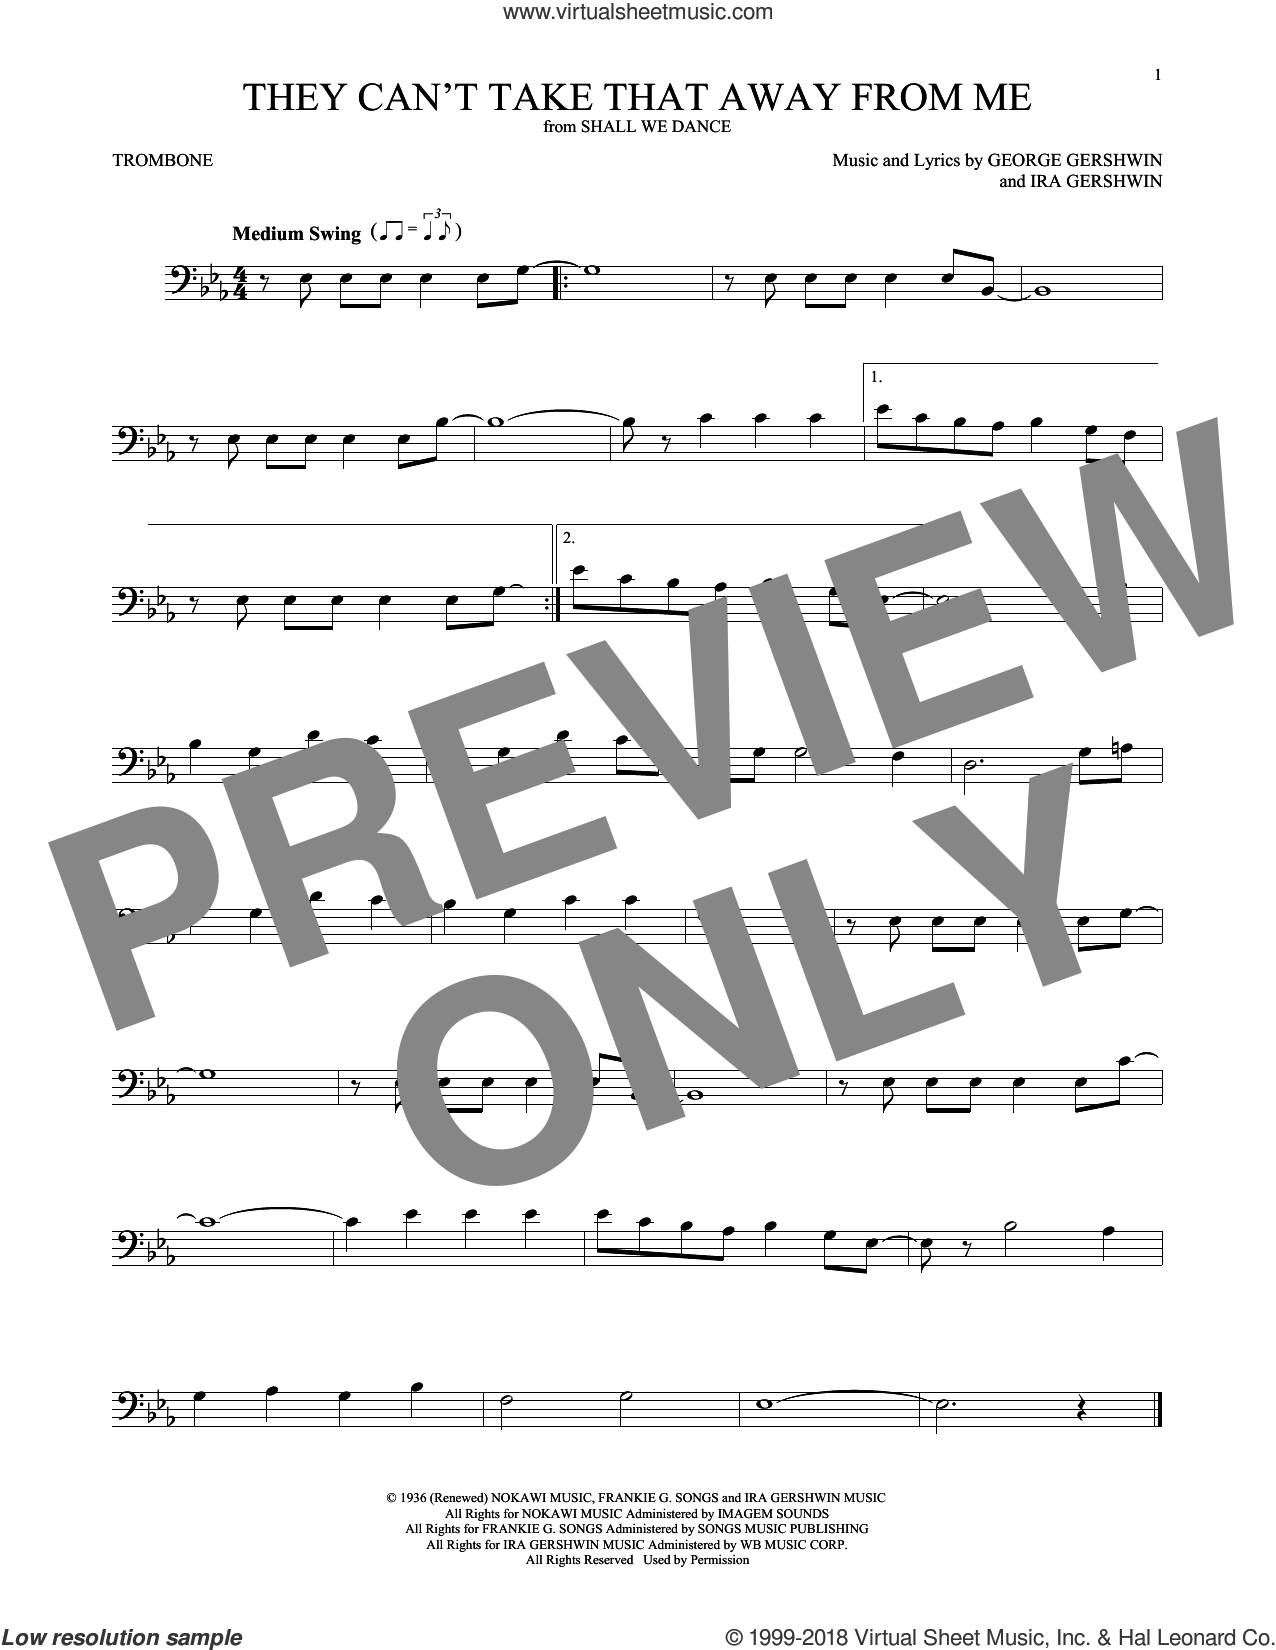 They Can't Take That Away From Me sheet music for trombone solo by Frank Sinatra, George Gershwin and Ira Gershwin, intermediate